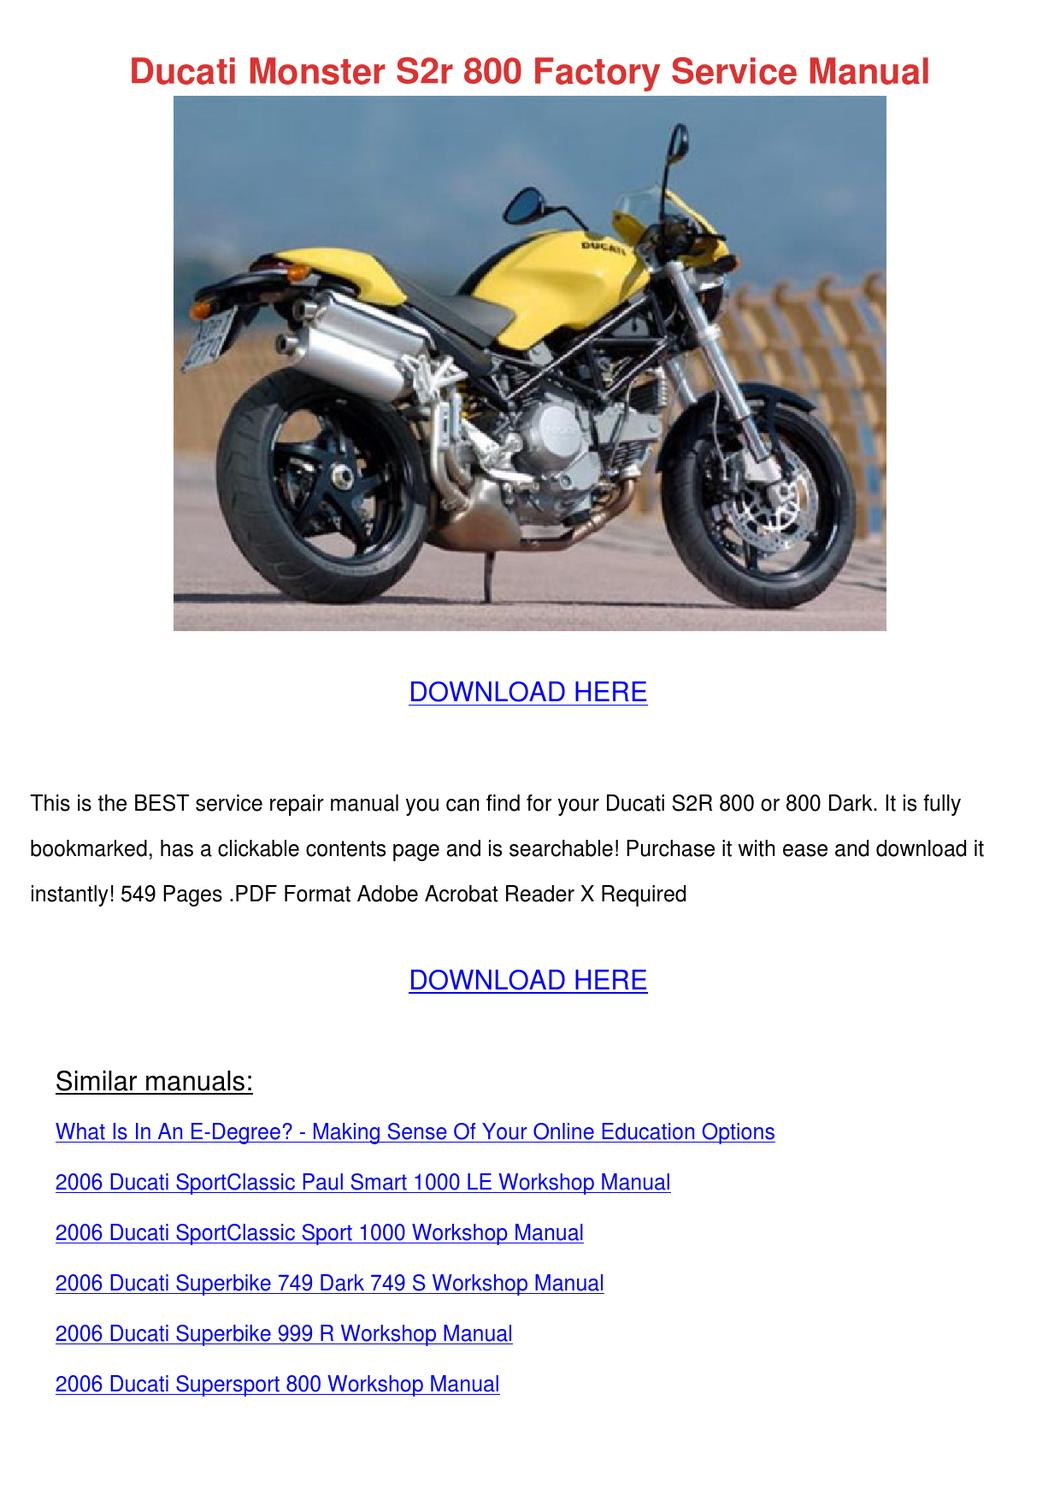 Ducati Monster S2r 800 Factory Service Manual By Reda